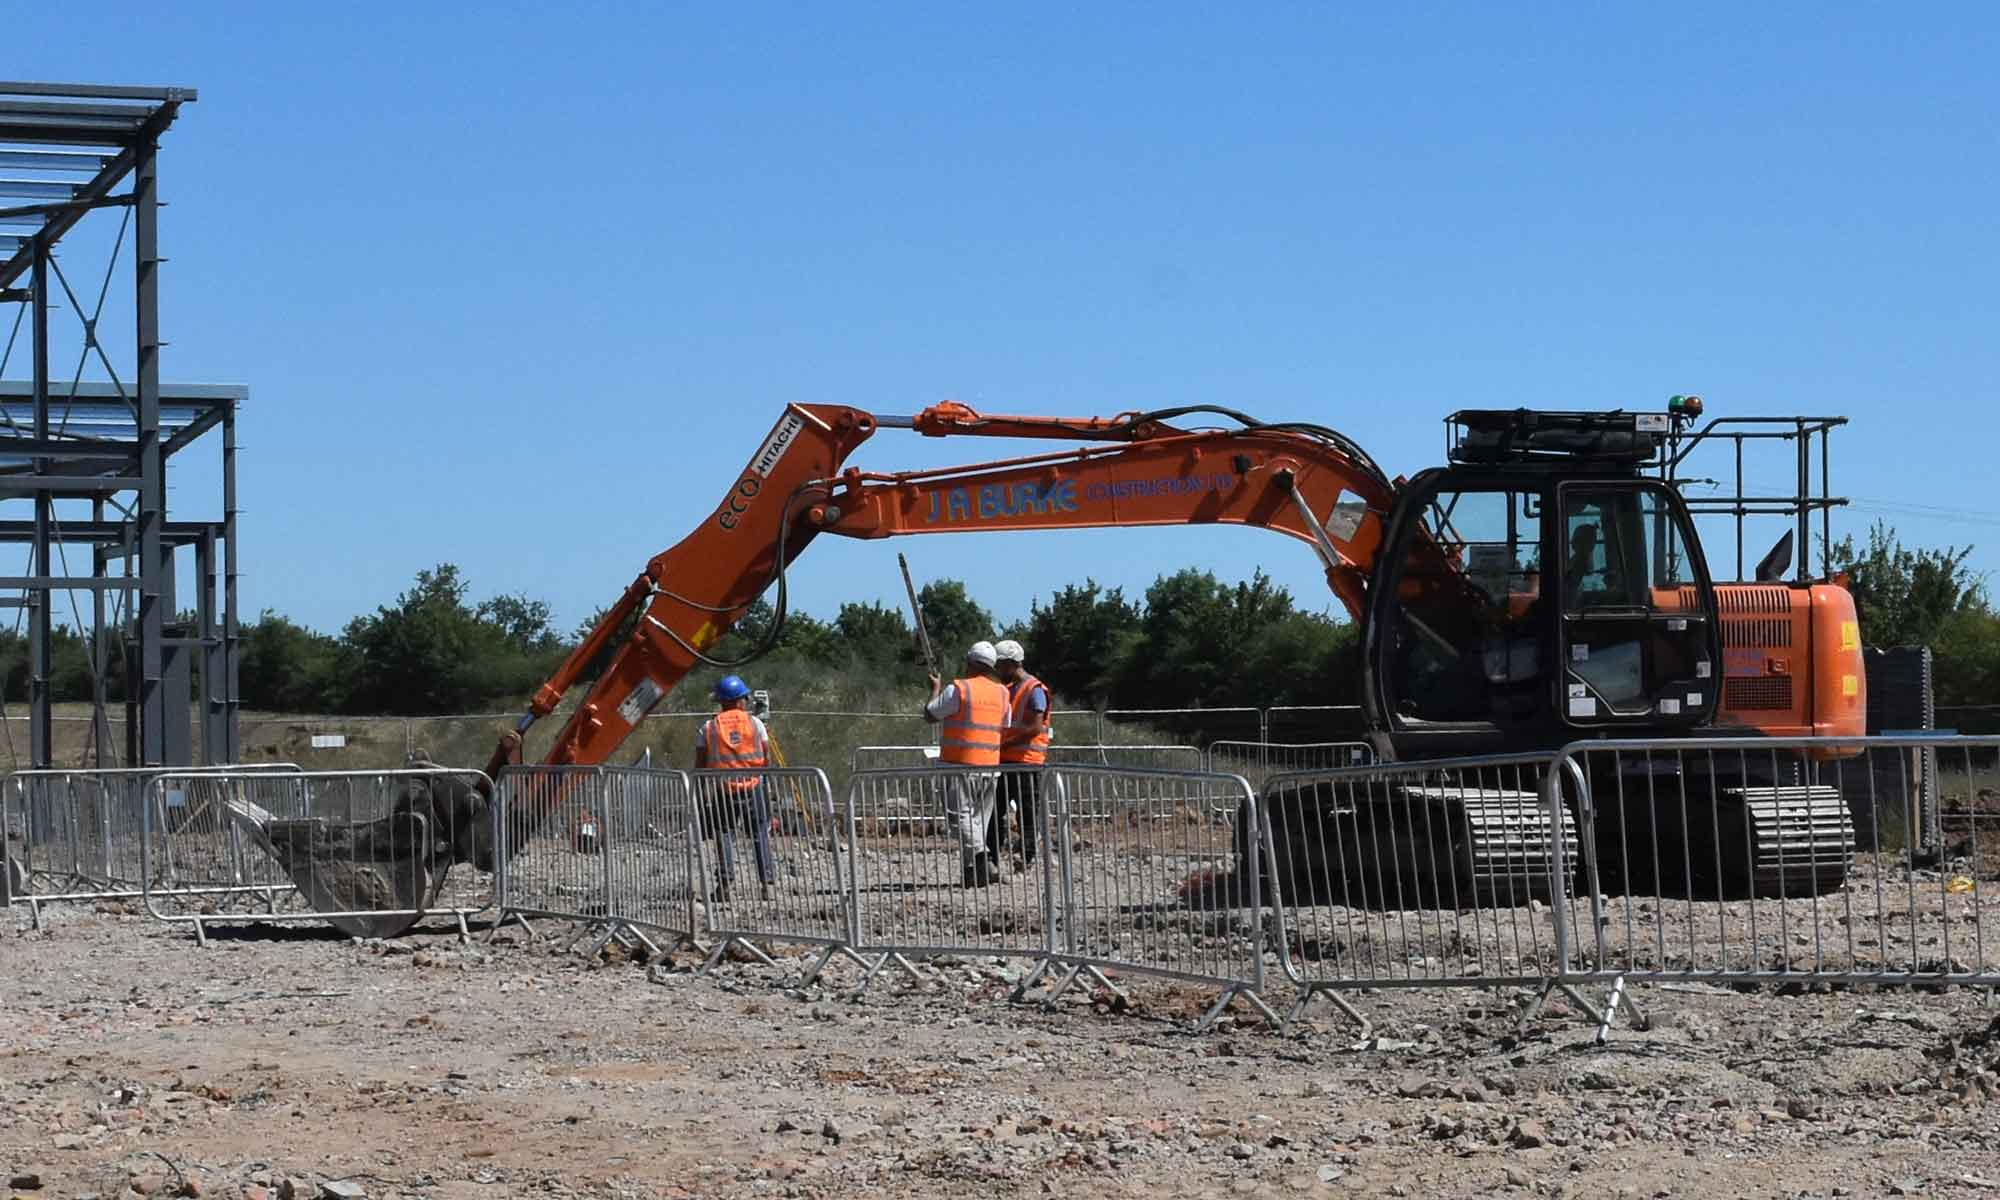 Aldi Chelaston - J A Burke Construction Limited - Midlands based ground works, civils and RC frame company.